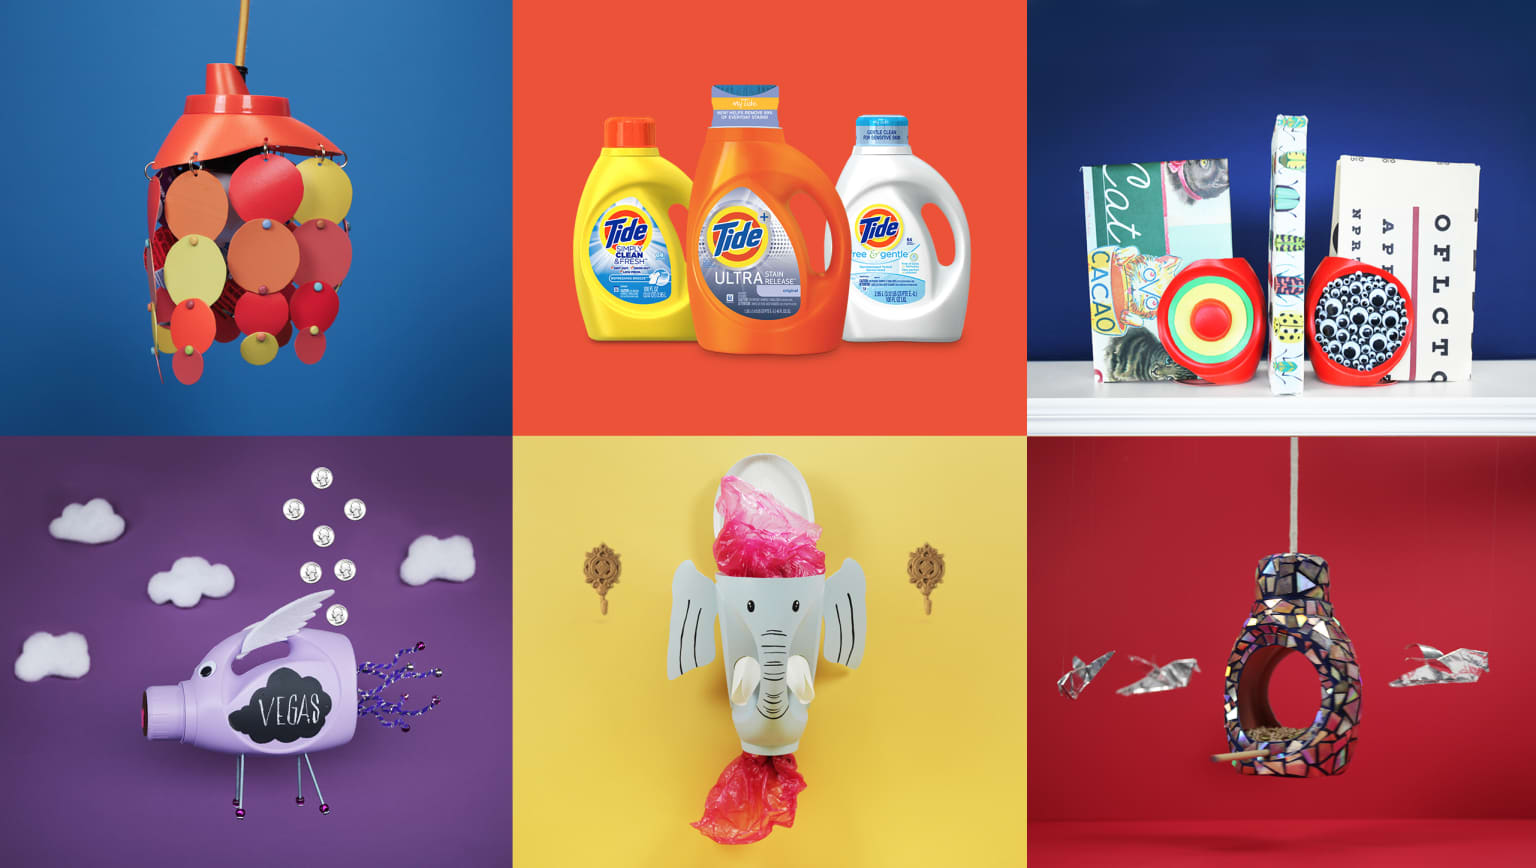 """#TideKeepsies"" Tide's Sustainability Social Campaign"